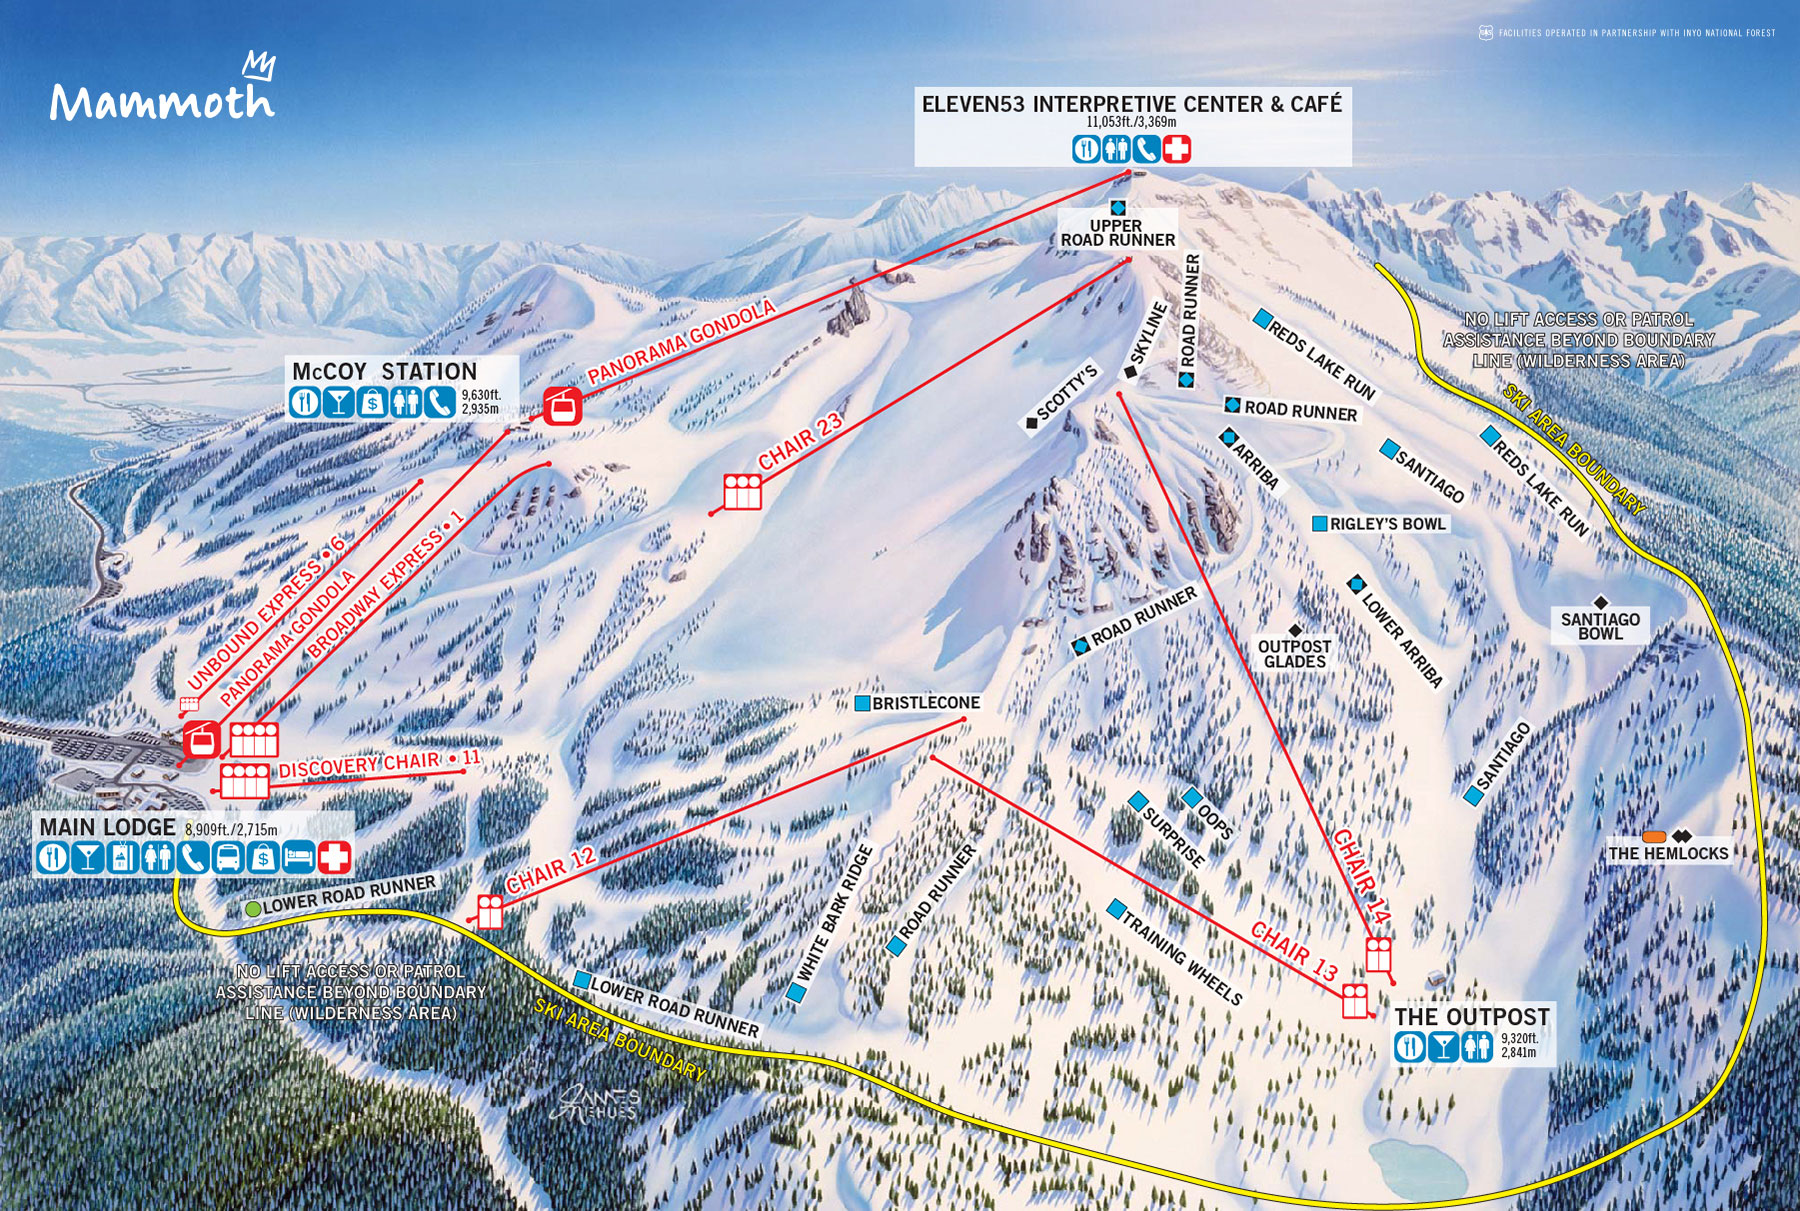 Ski map of Mammoth Mountain, California